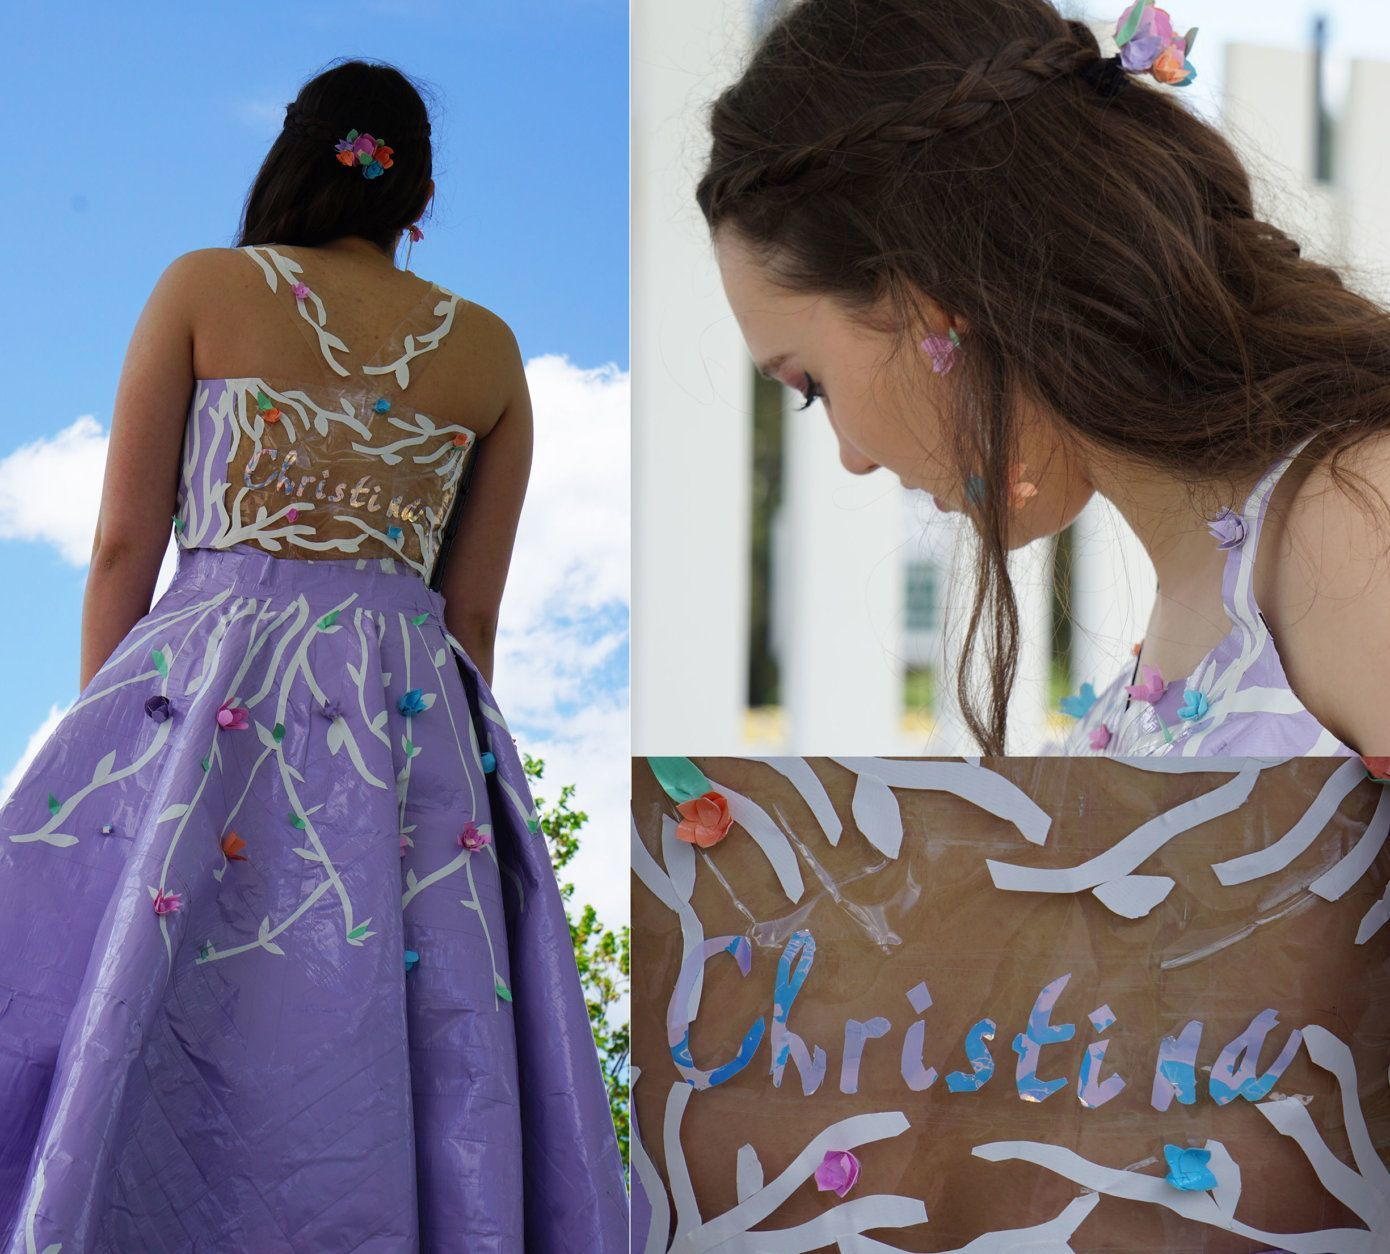 In addition to the dress, Christina made matching accessories, including duct tape floral earrings and headpiece. The back bodice of the dress had a sheer panel that included her name (cut by hand) using iridescent tape. (Courtesy Christina Mellott)